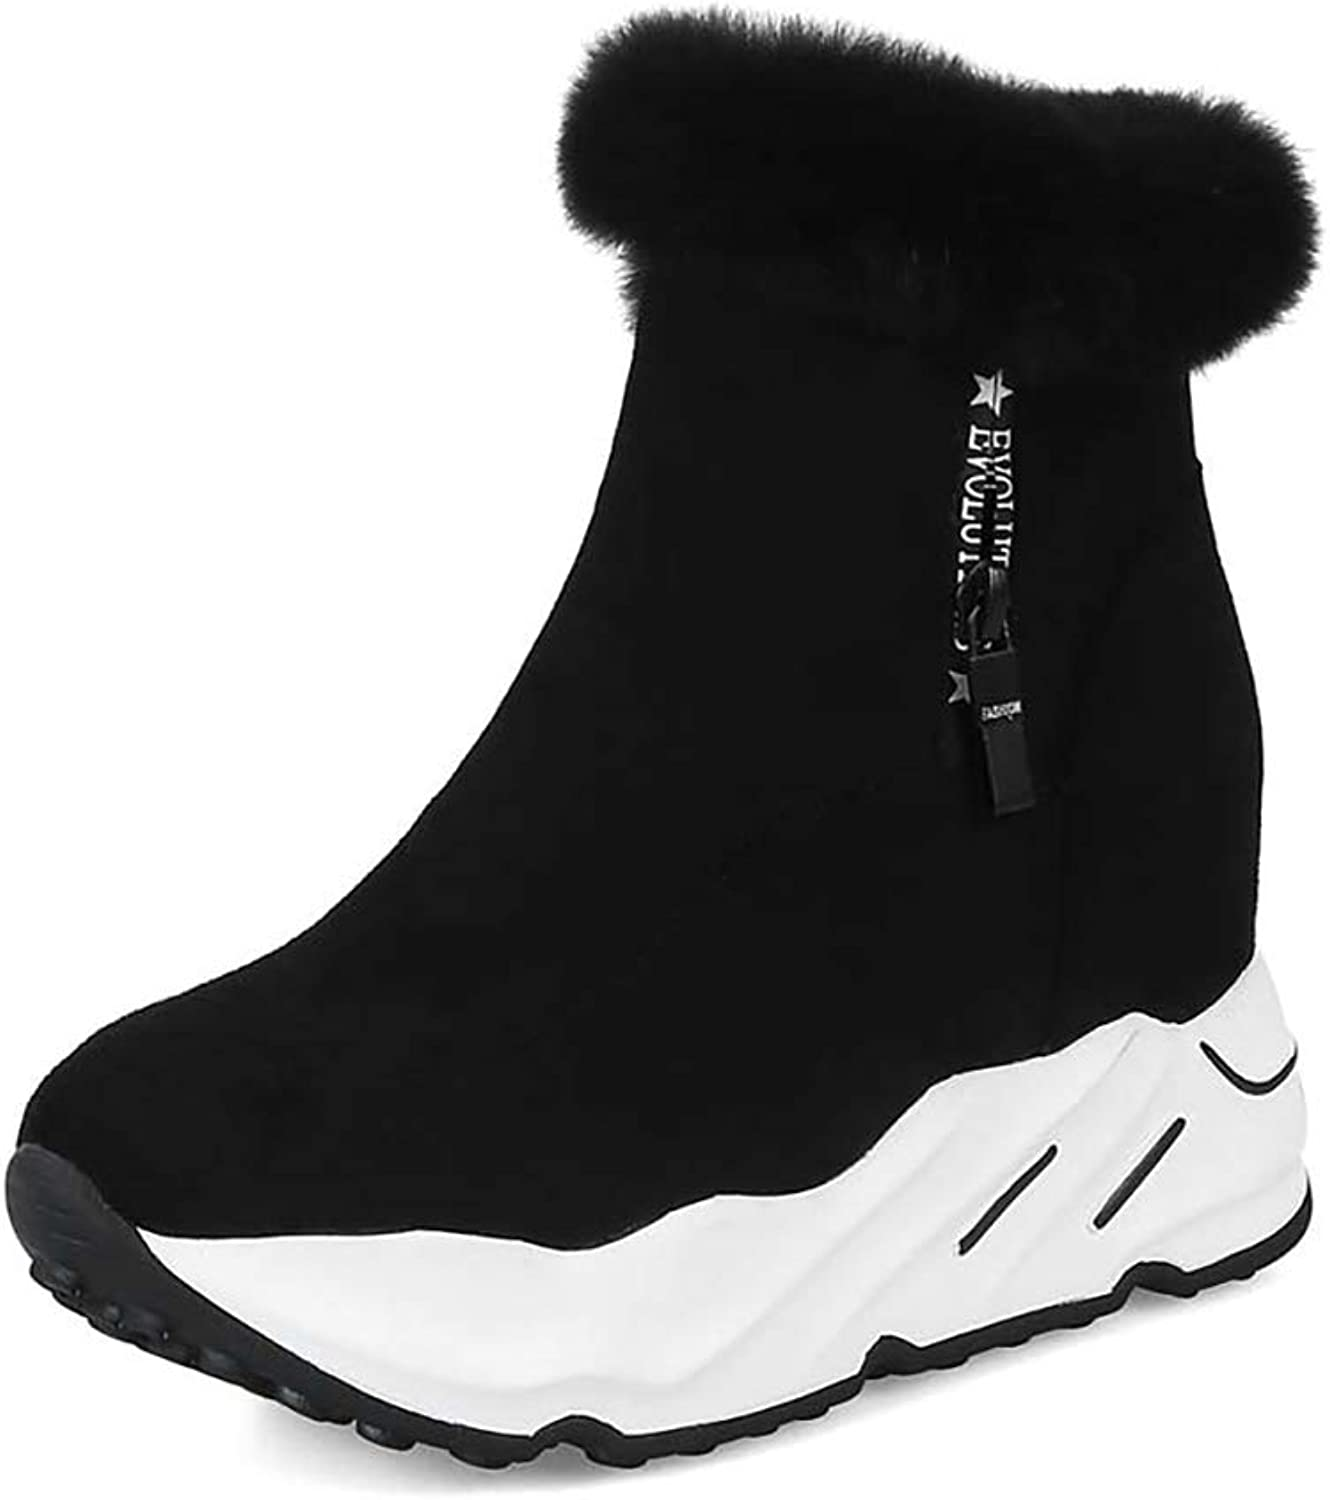 YUBIN Damen Damen Damen Winter Plus Samt Warme Plattform Mit Anti-Skischuhen, Schwarz (Farbe   SCHWARZ, größe   EU 39 US 7 UK 6 JP 24.5cm)  3fbb02